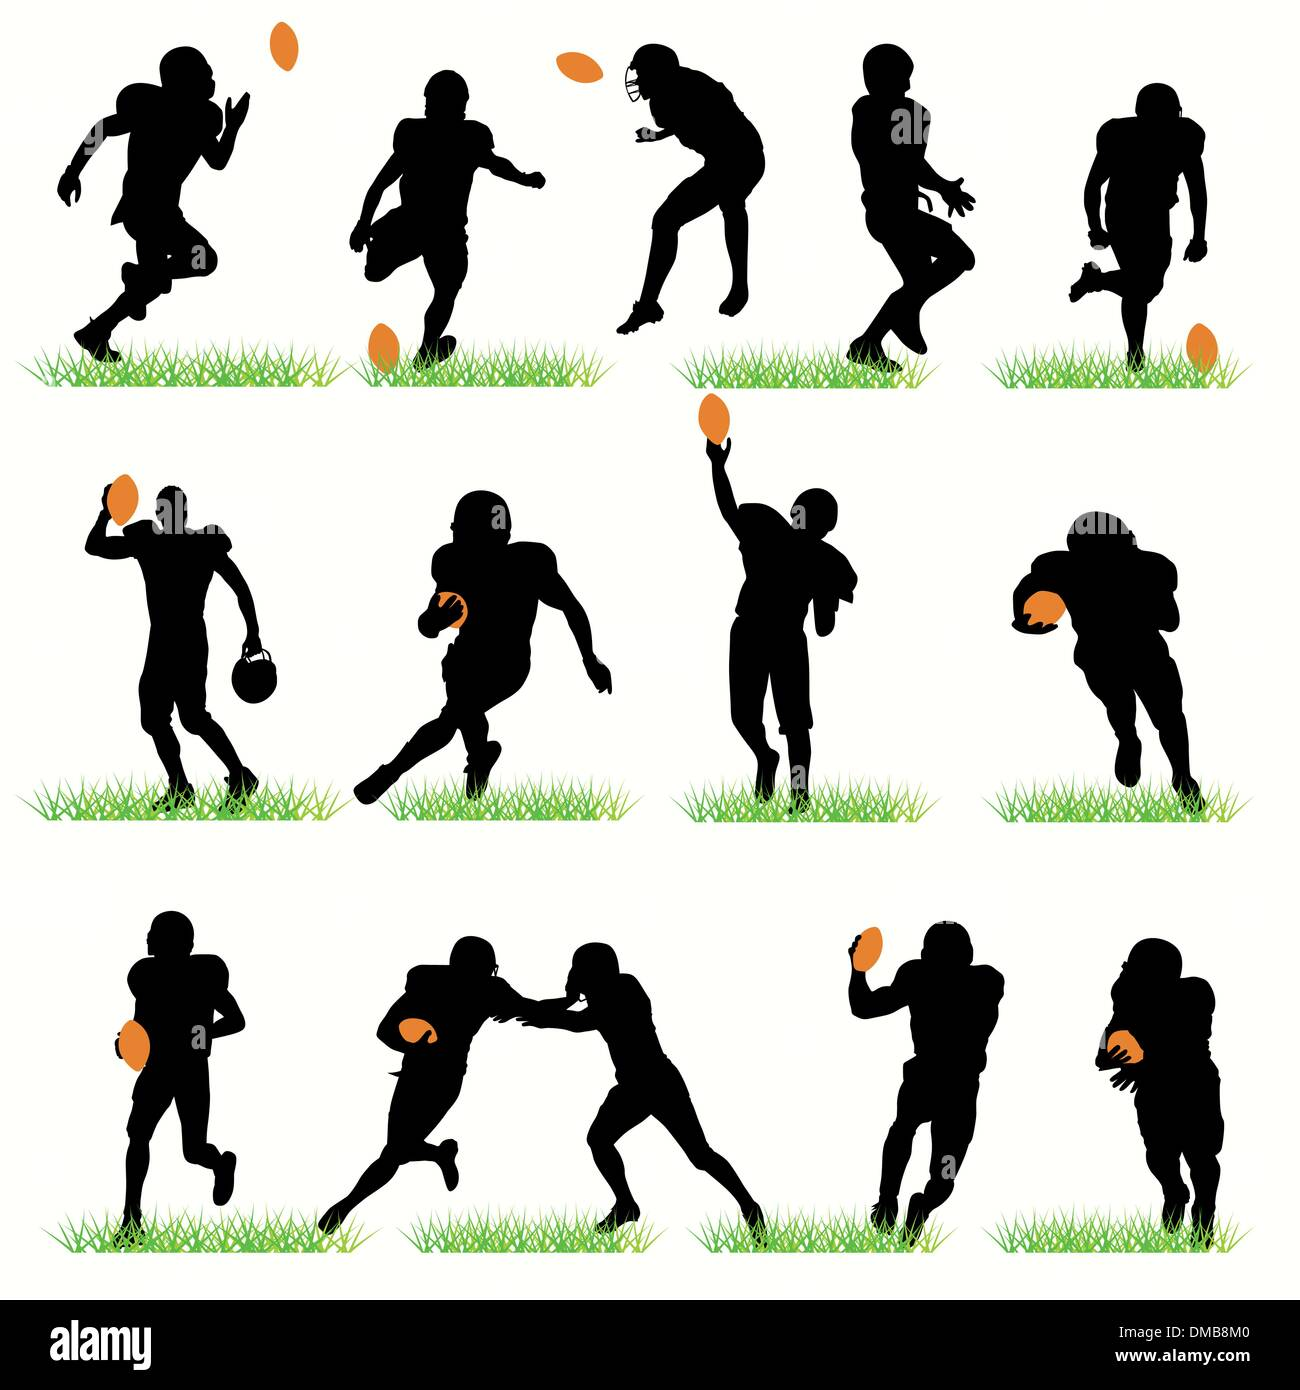 American Football Players Silhouettes Set - Stock Image